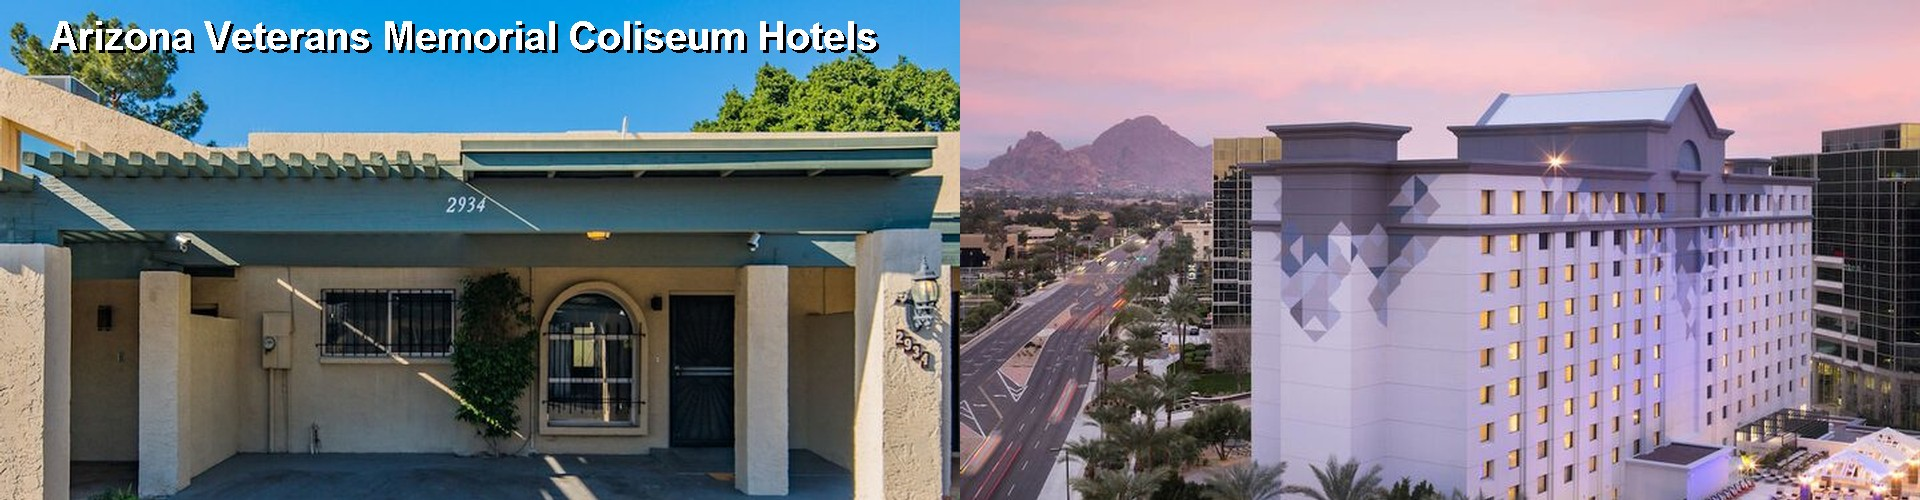 5 Best Hotels near Arizona Veterans Memorial Coliseum